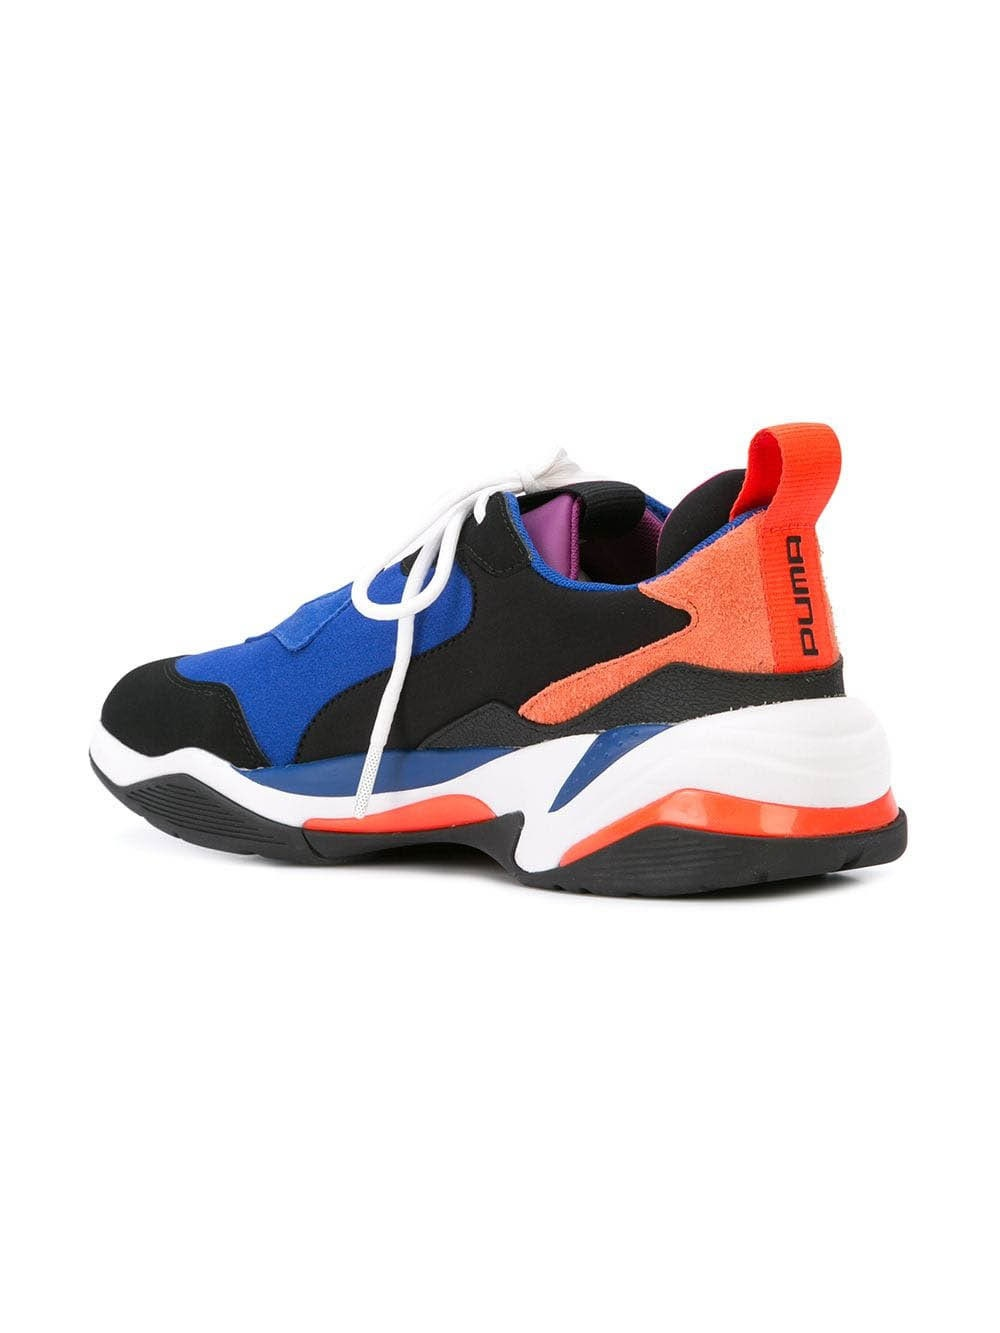 Puma Thunder 4 Life Sneakers | The Webster